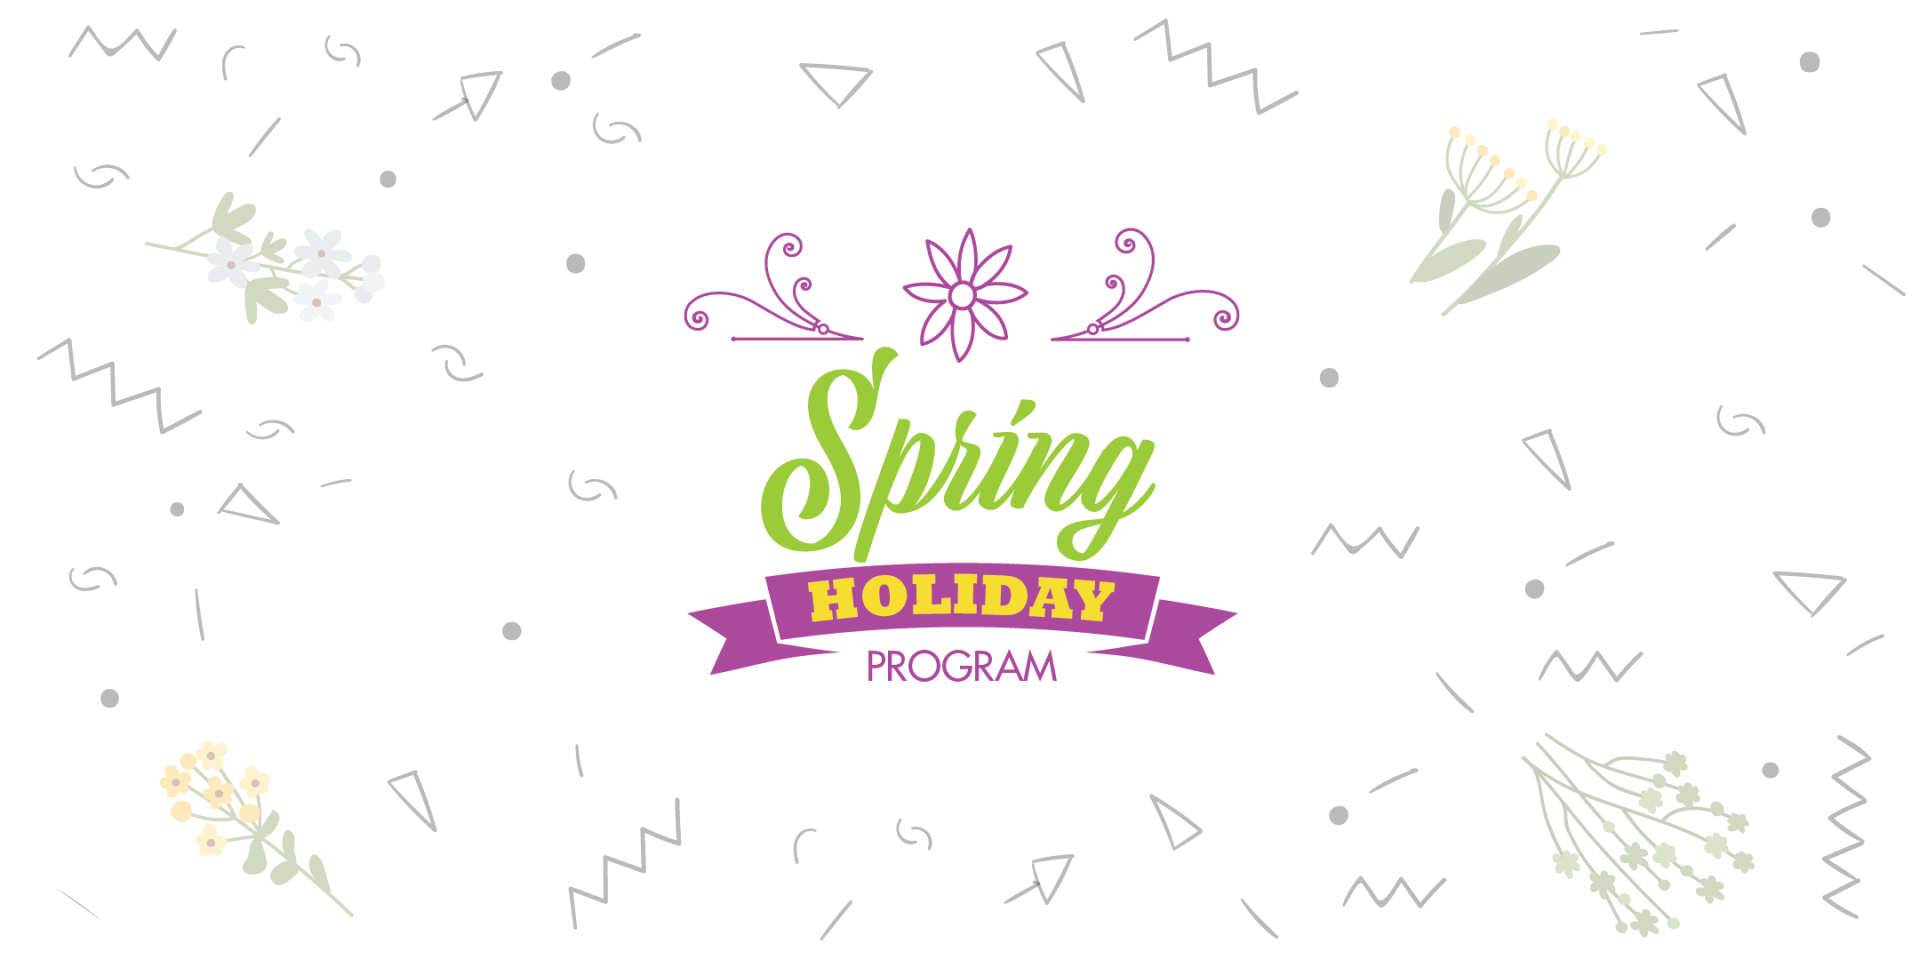 Spring Holiday Program comes to life